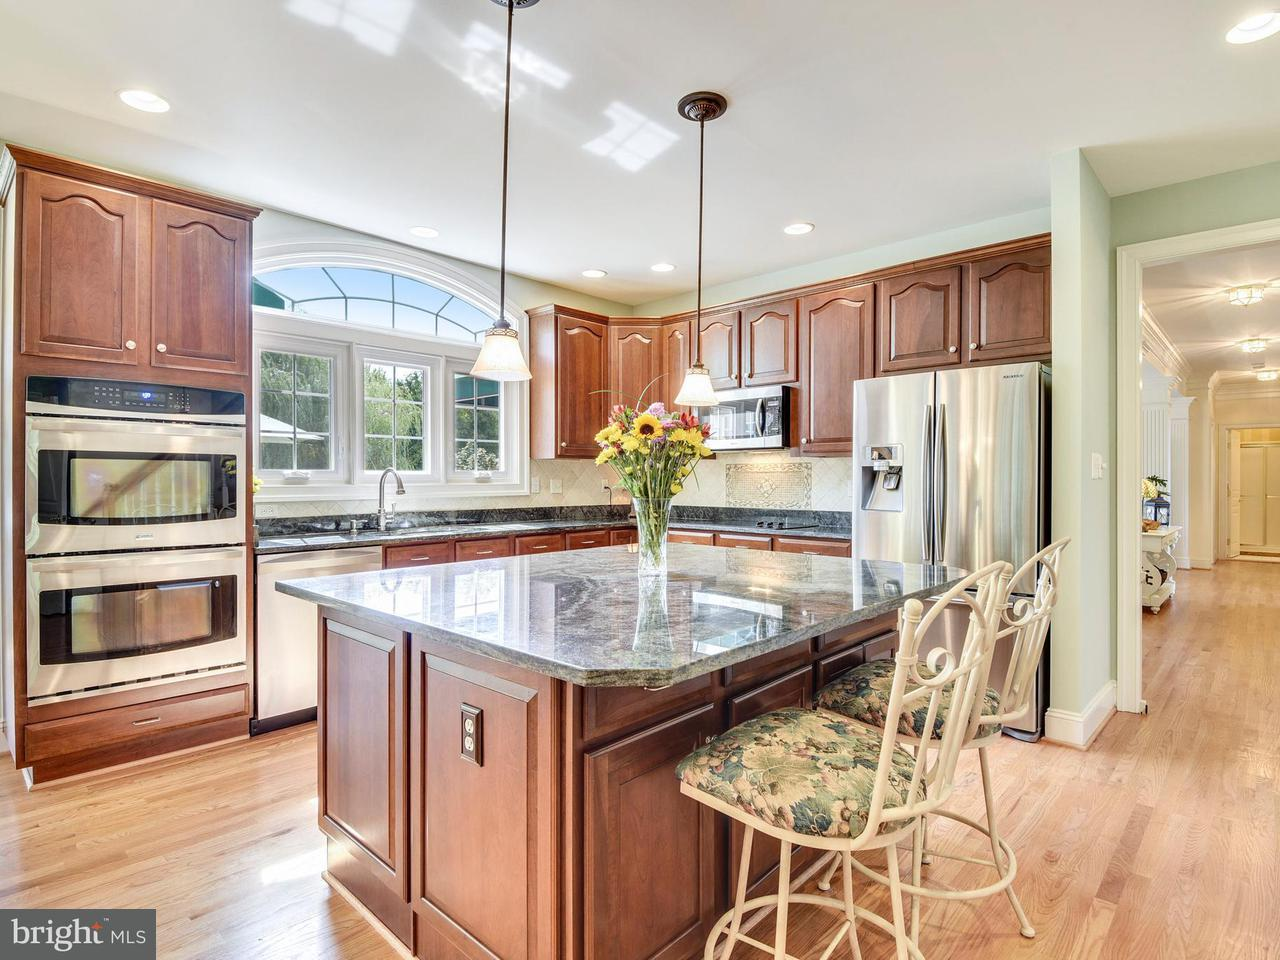 Single Family Home for Sale at 707 AMELIA ISLAND Court 707 AMELIA ISLAND Court Silver Spring, Maryland 20905 United States